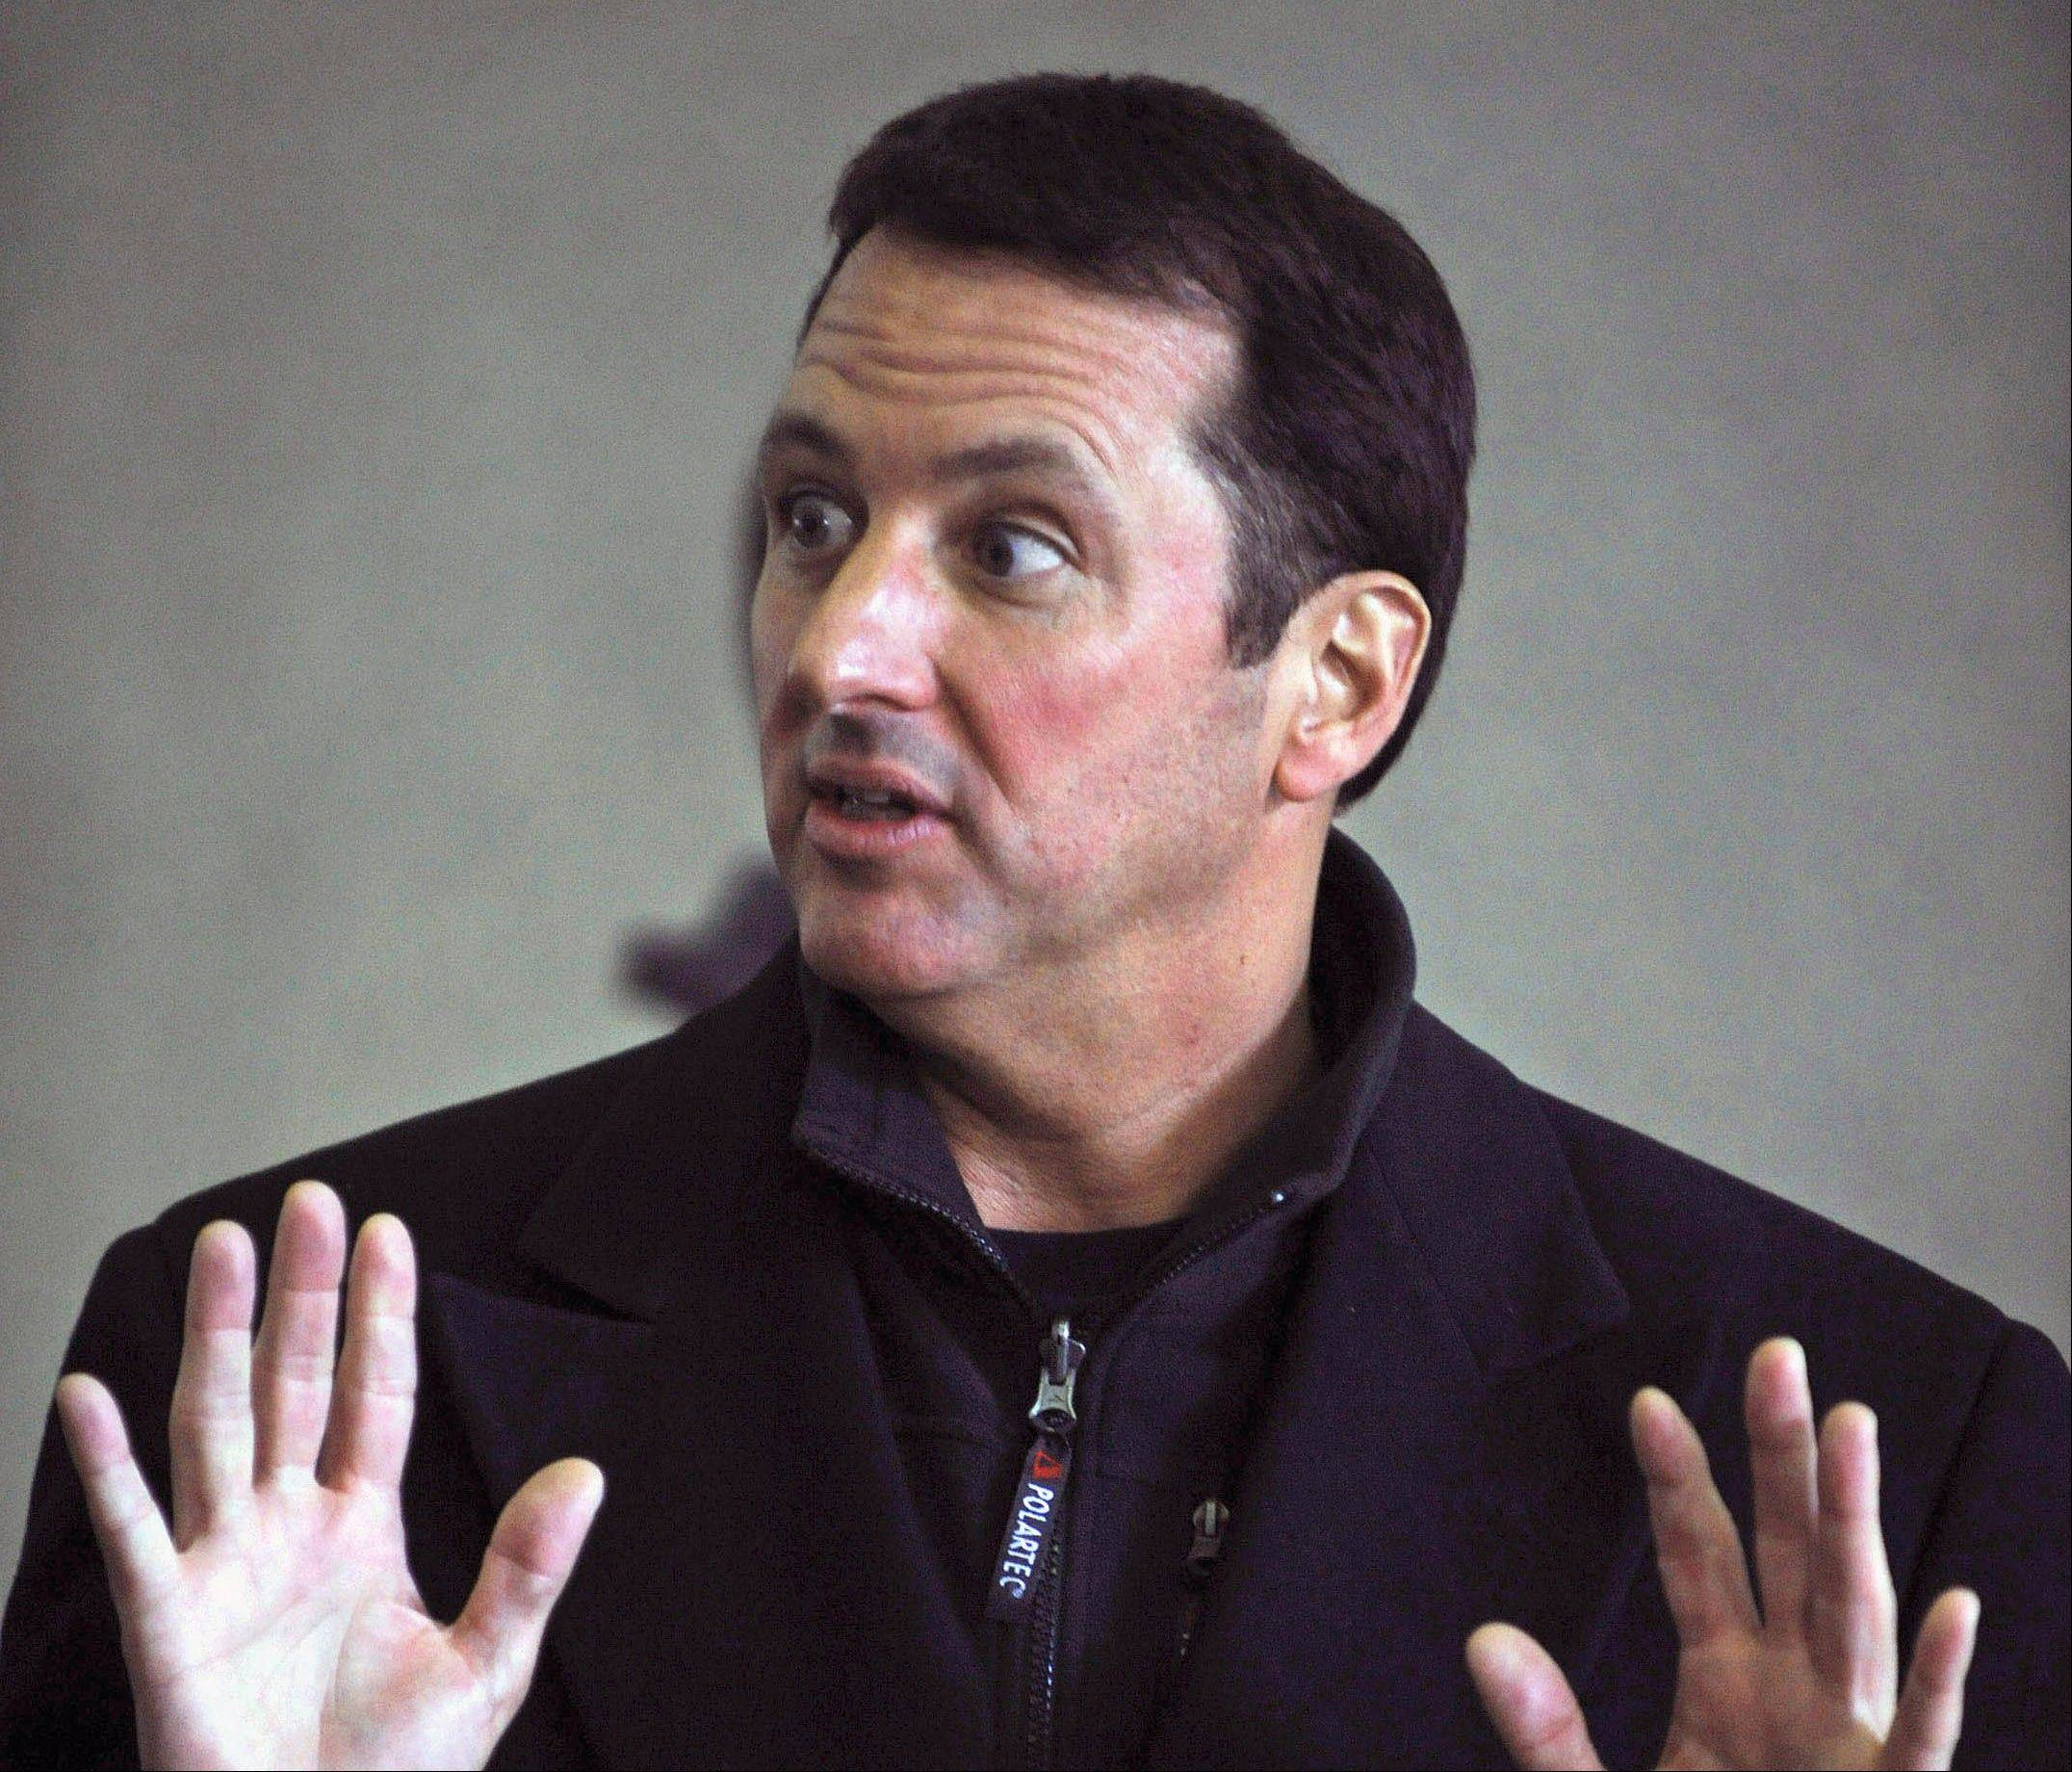 Television pitchman Kevin Trudeau, who is accused of misleading viewers about his weight-loss books during late-night infomercials, will have another chance to argue for his freedom in federal court in Chicago on Monday.